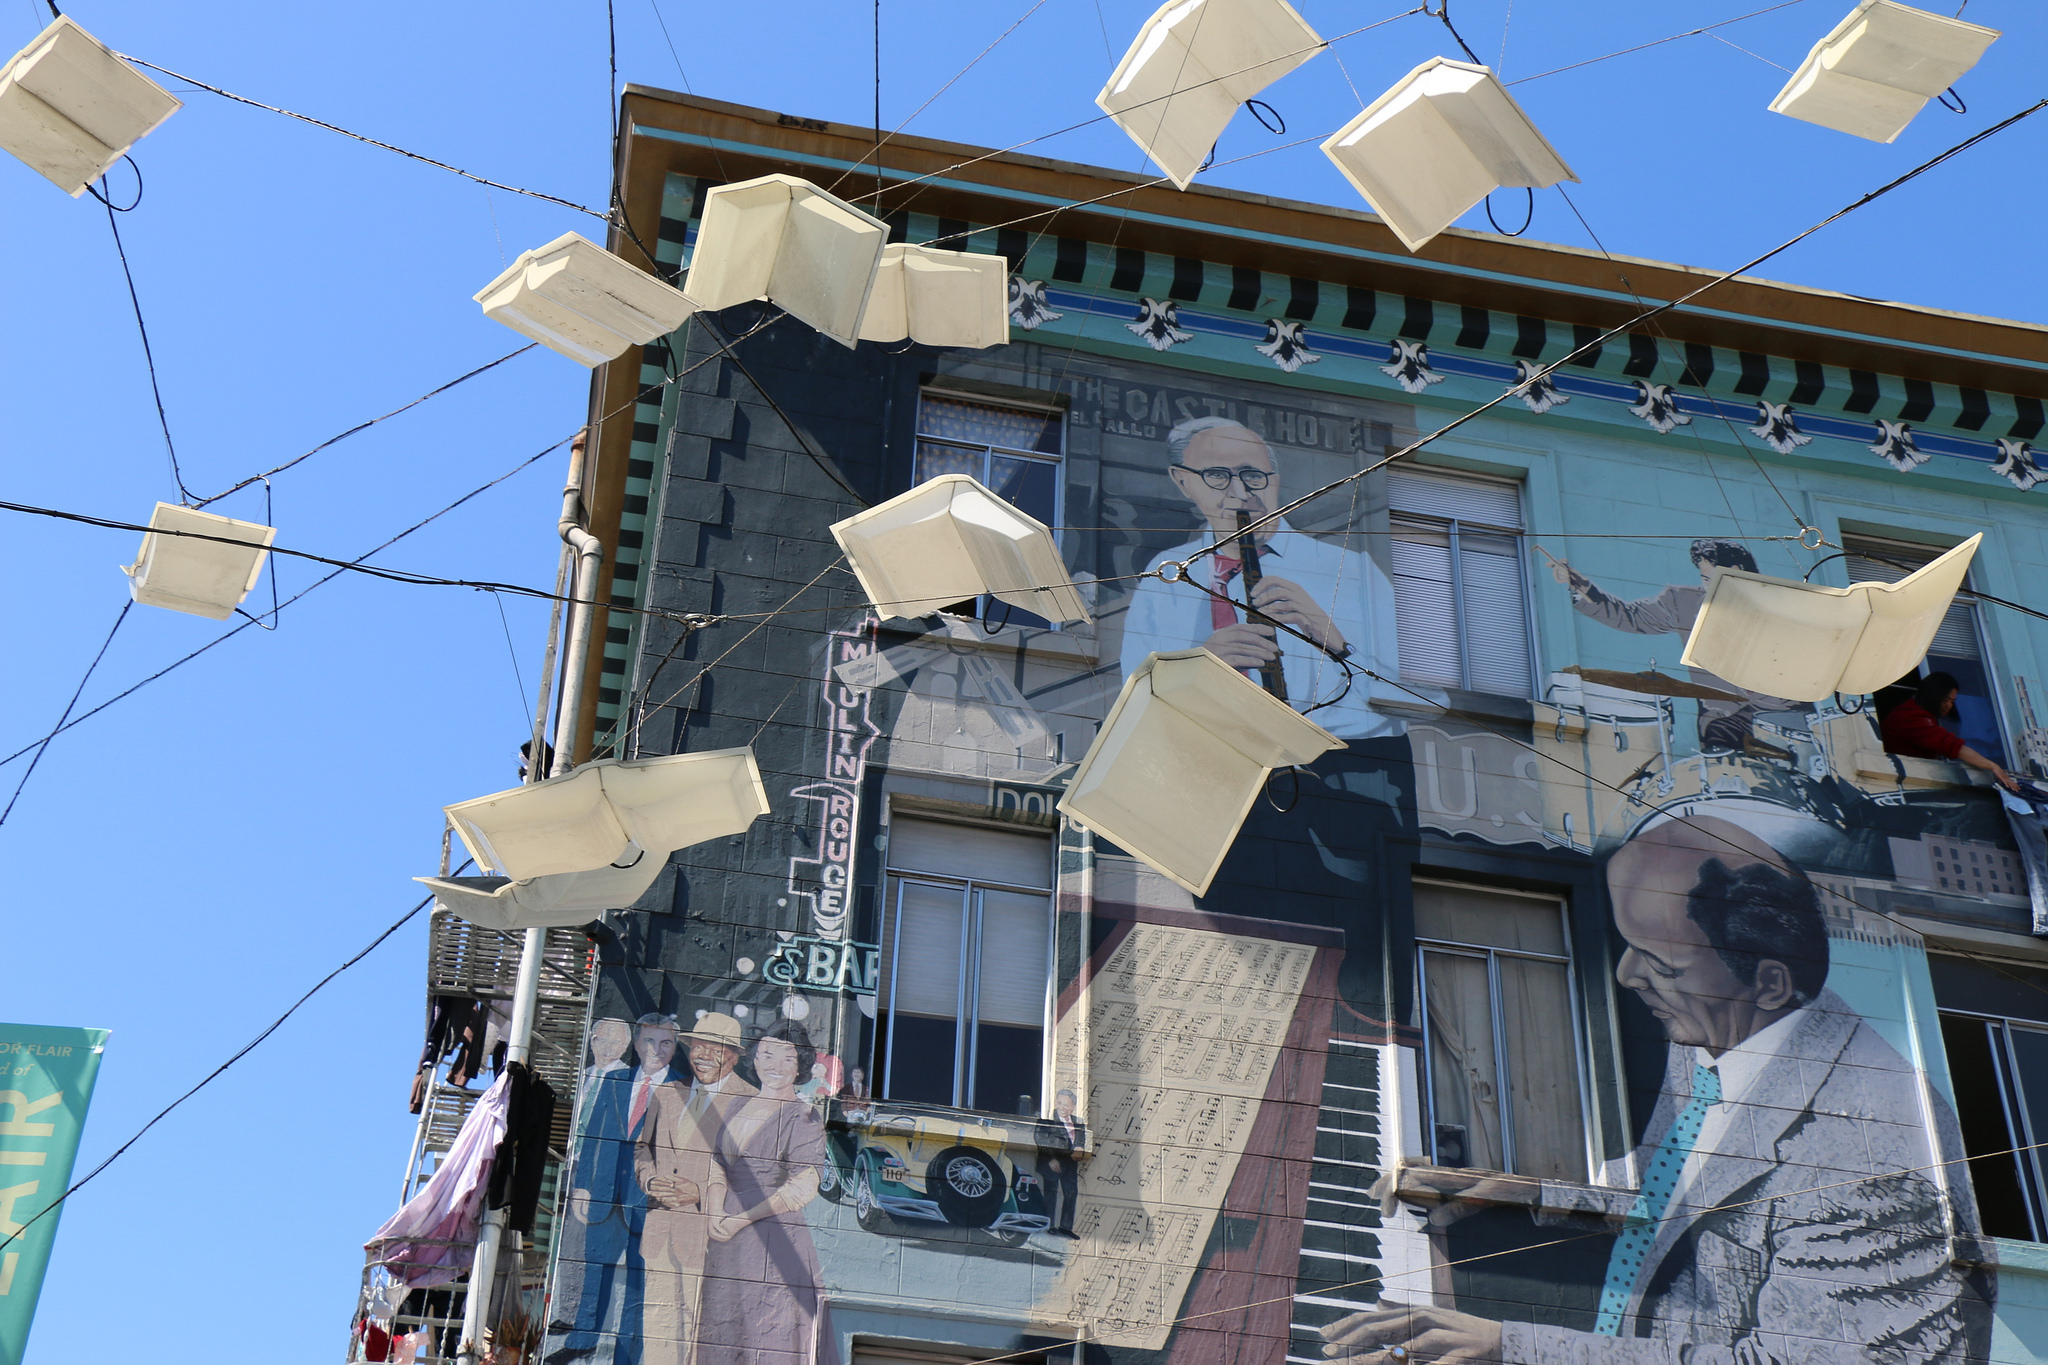 Let the Books Fly_14923232108_l.jpg